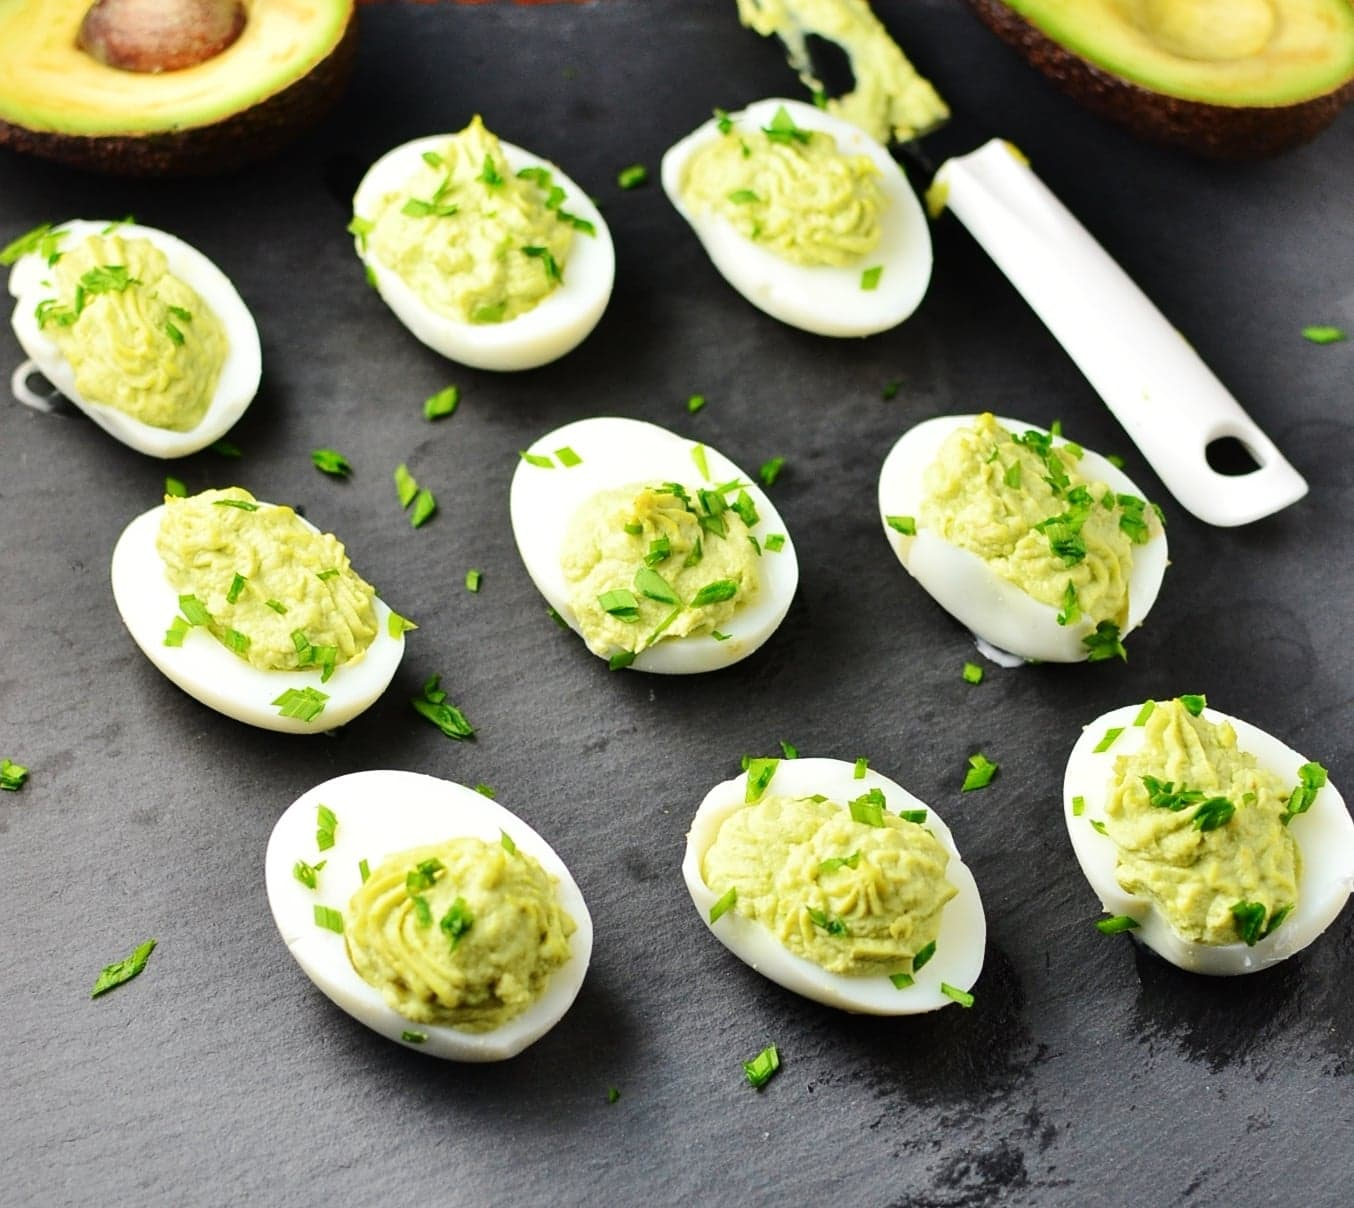 Deviled eggs on top of slate surface.